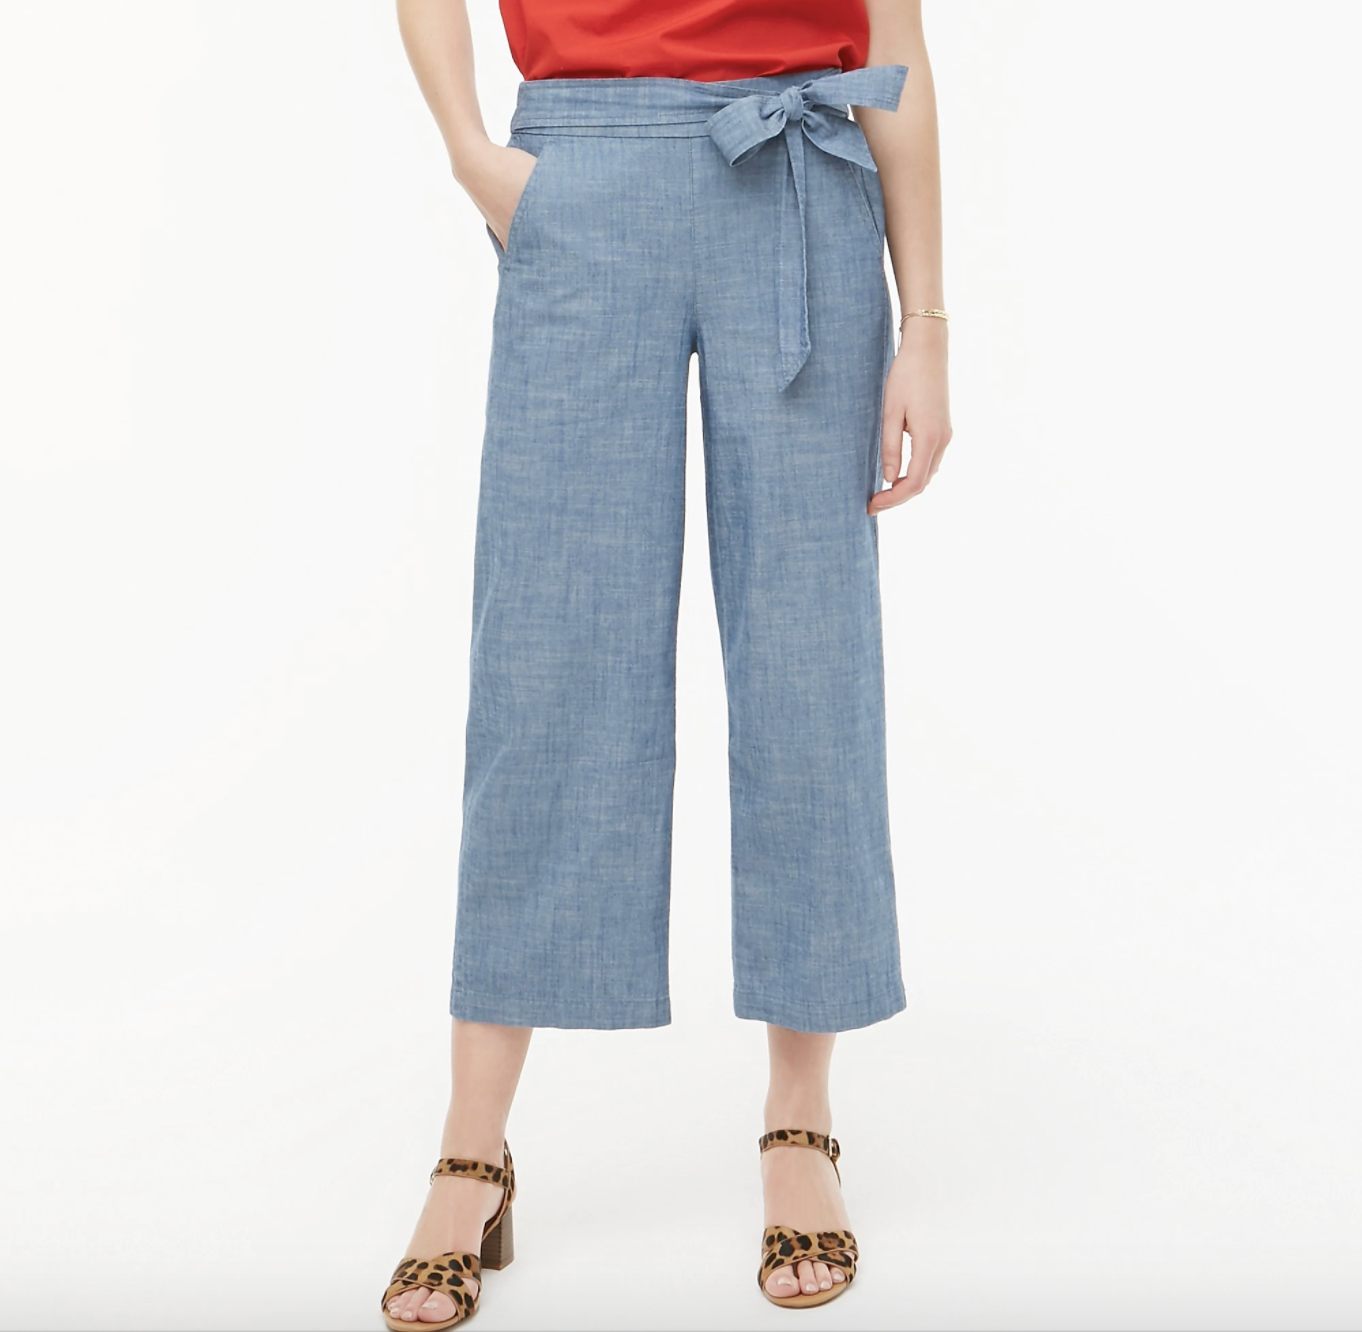 the chambray pants